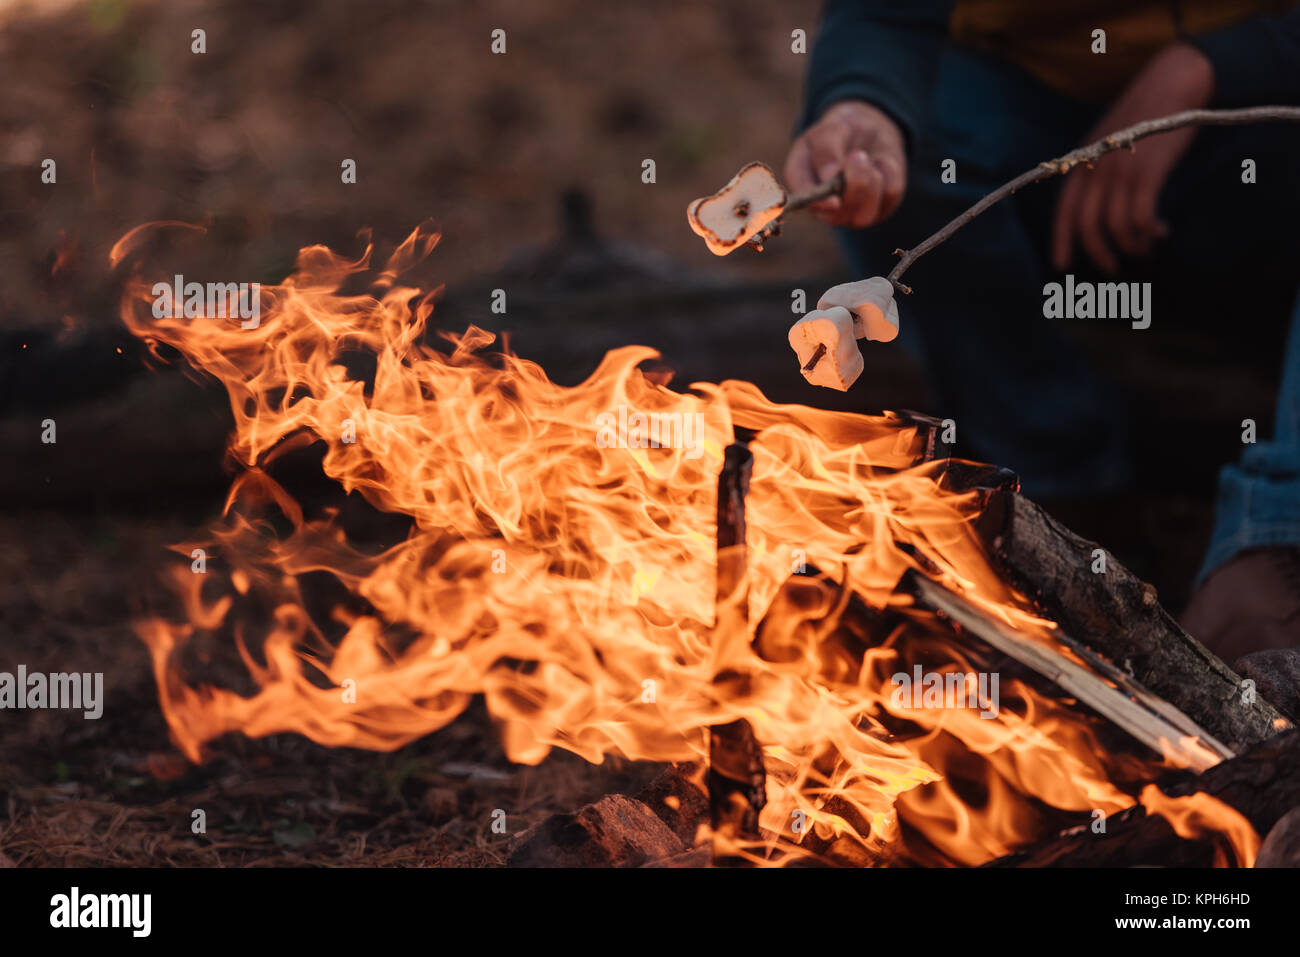 cooking marshmallows on bonfire - Stock Image